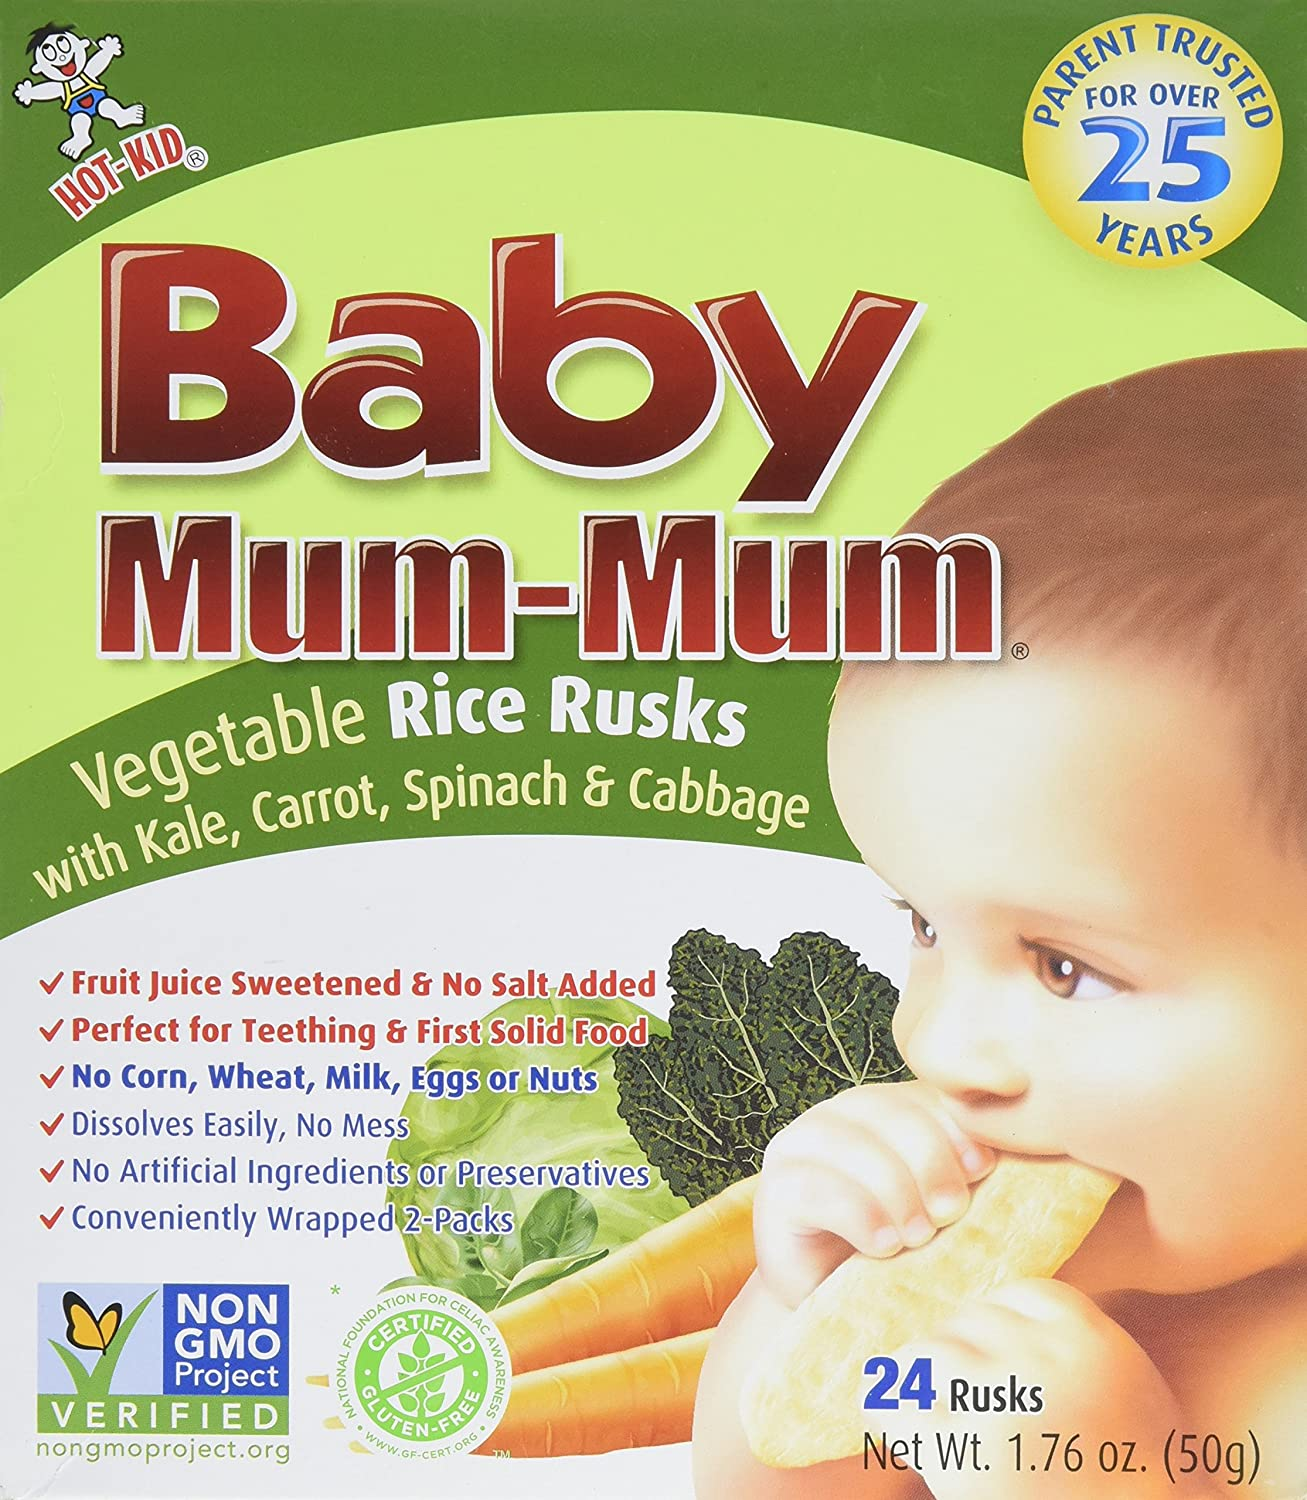 Hot-Kid Baby Mum-Mum Rice Rusks, Apple & Pumpkin, 24 Pieces (Pack of 6) Gluten Free, Allergen Free, Non-GMO, Rice Teether Cookie for Teething Infants National Importers US Inc. 809767